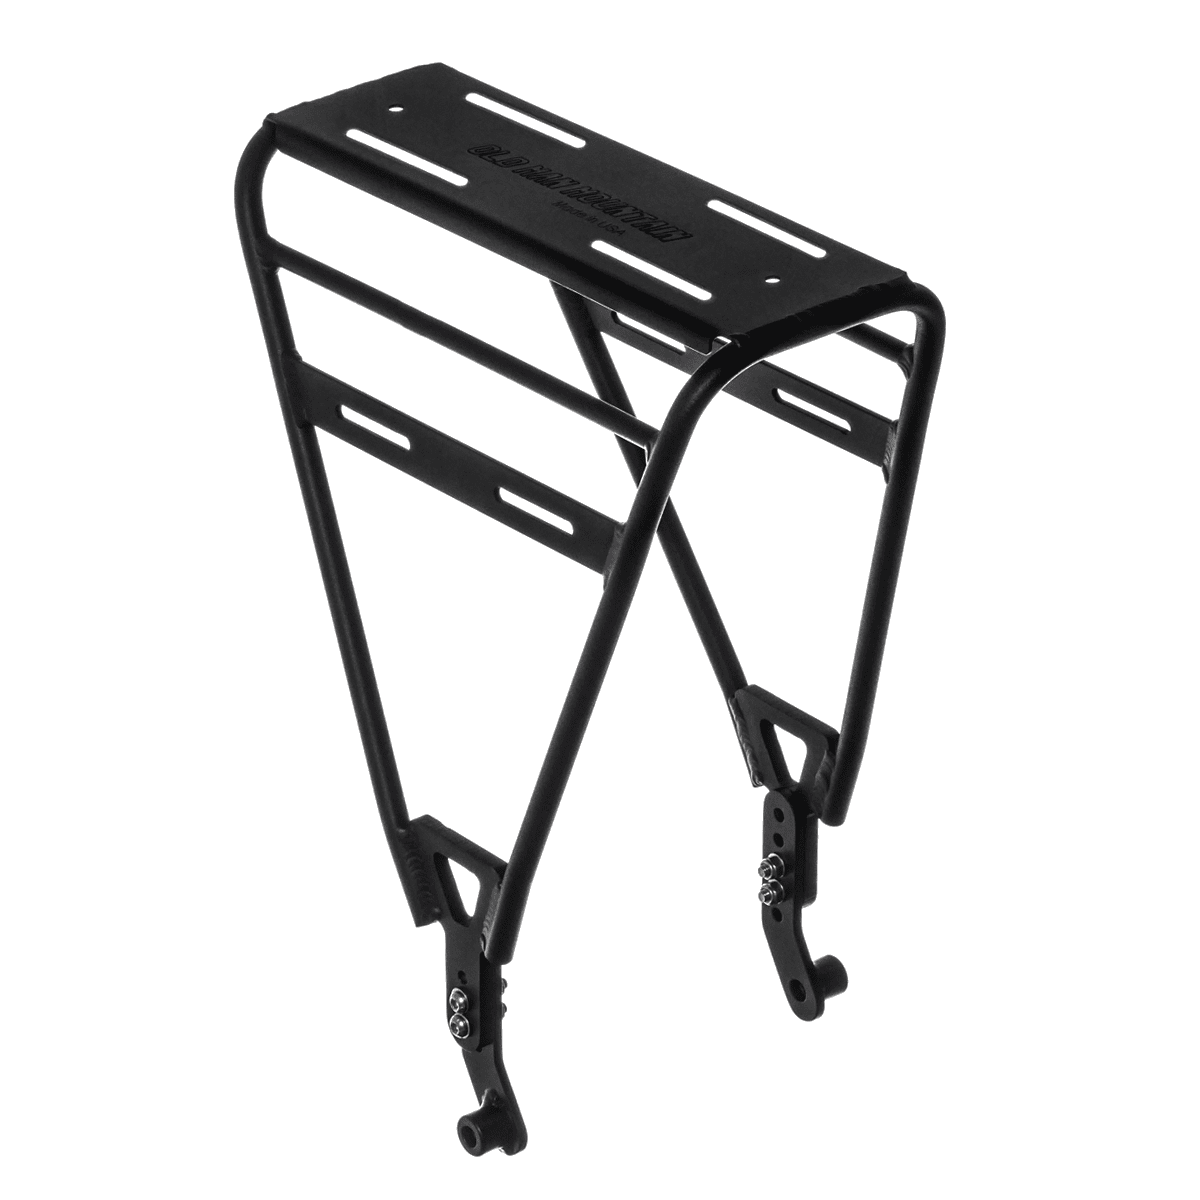 Divide Fat cargo bike rack to carry panniers and cargo on any thru axle bike